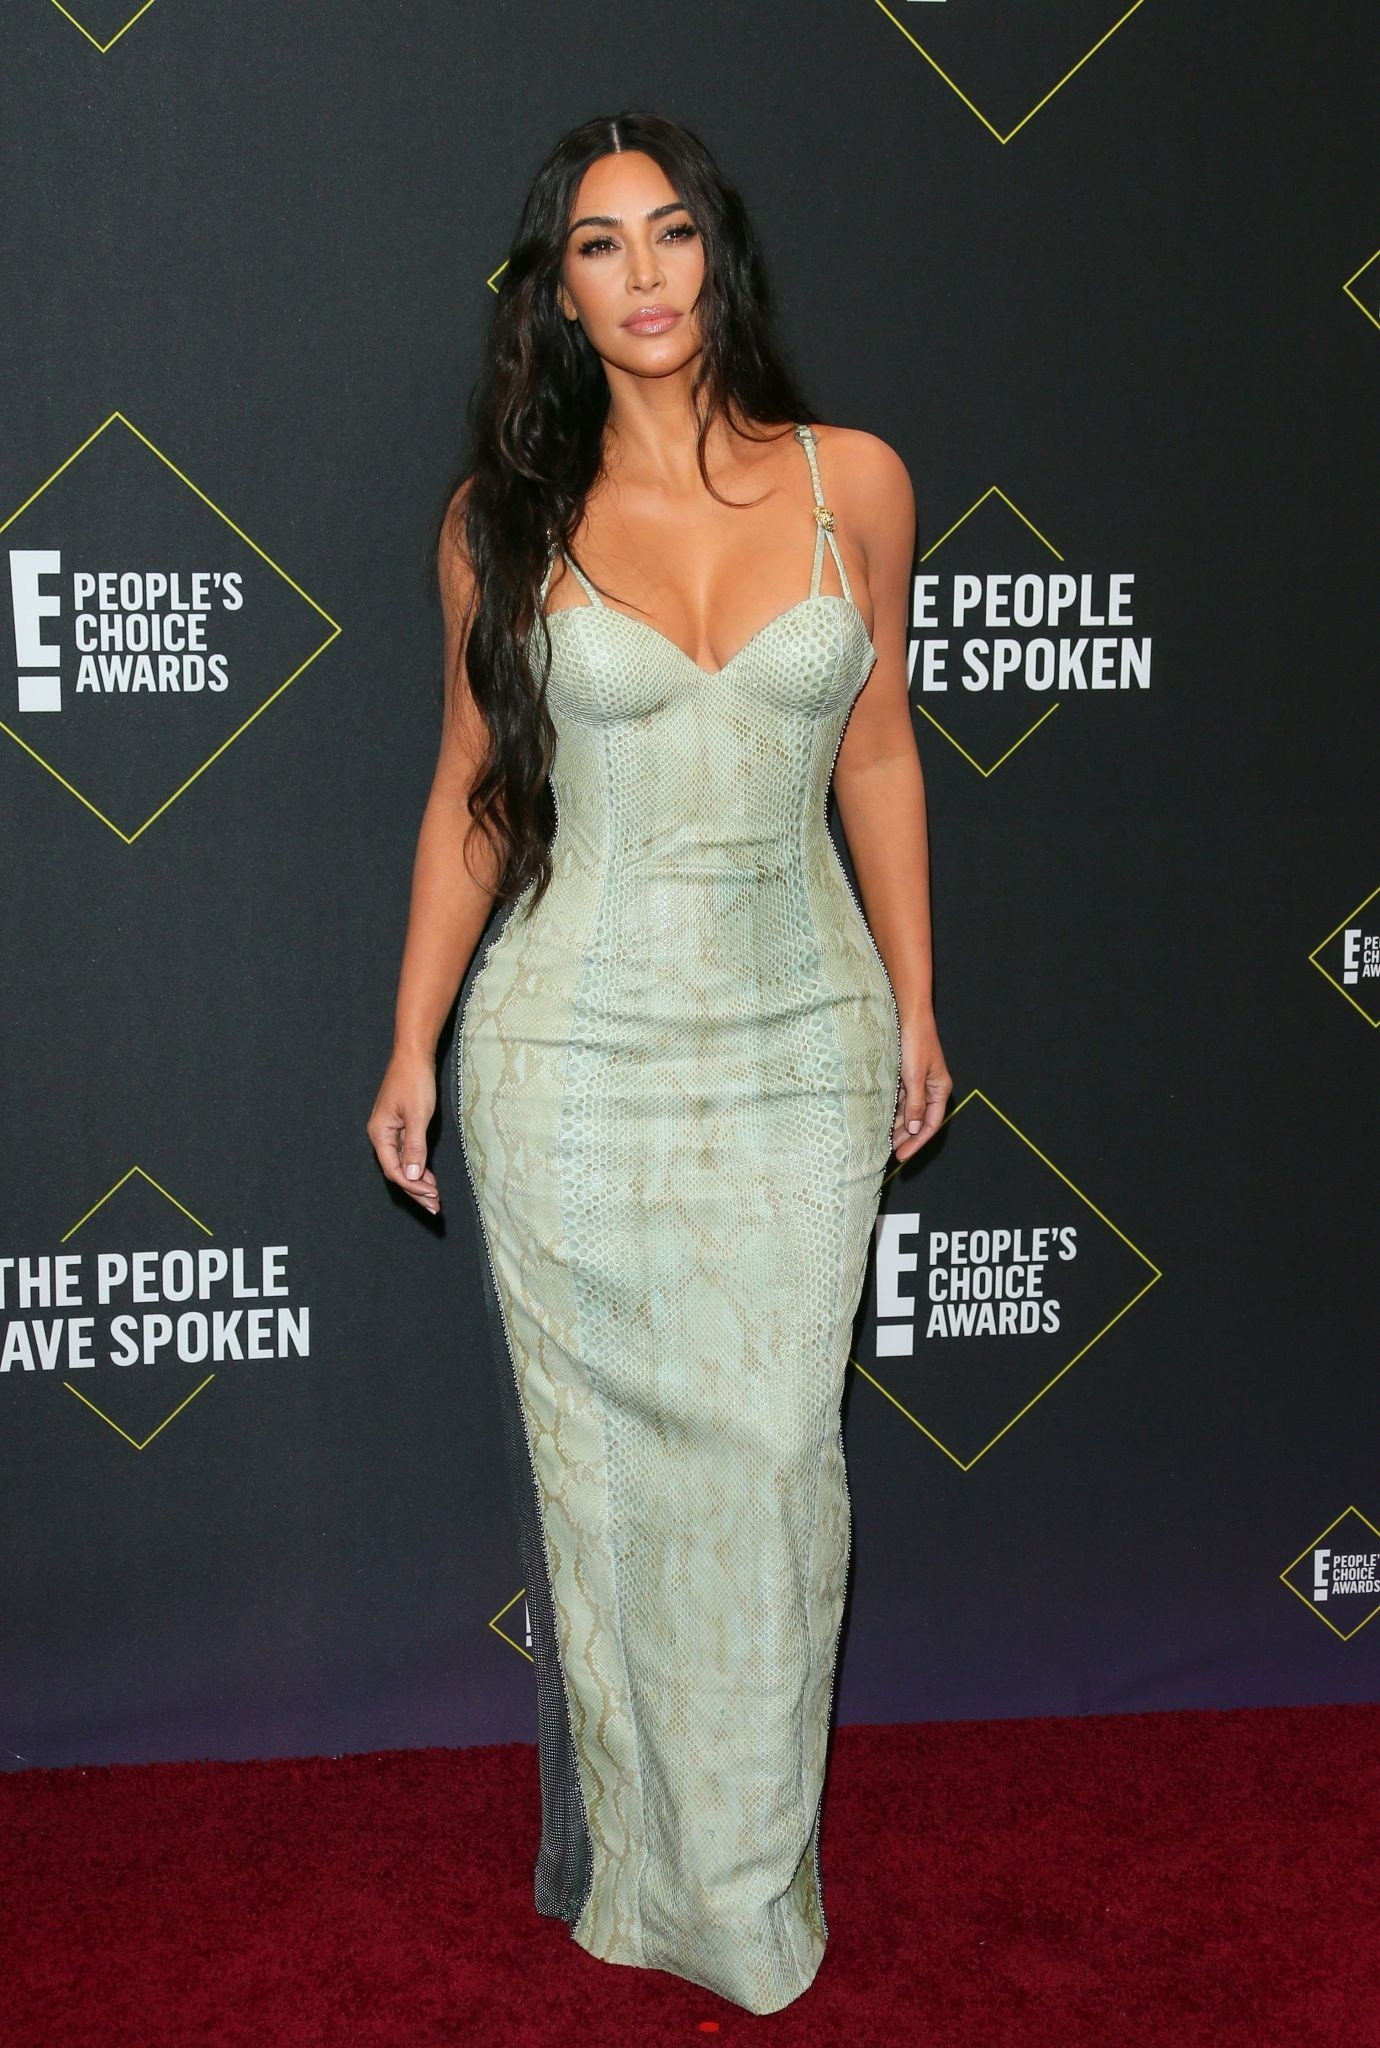 Kim Kardashian Sexy Cleavagy Dress